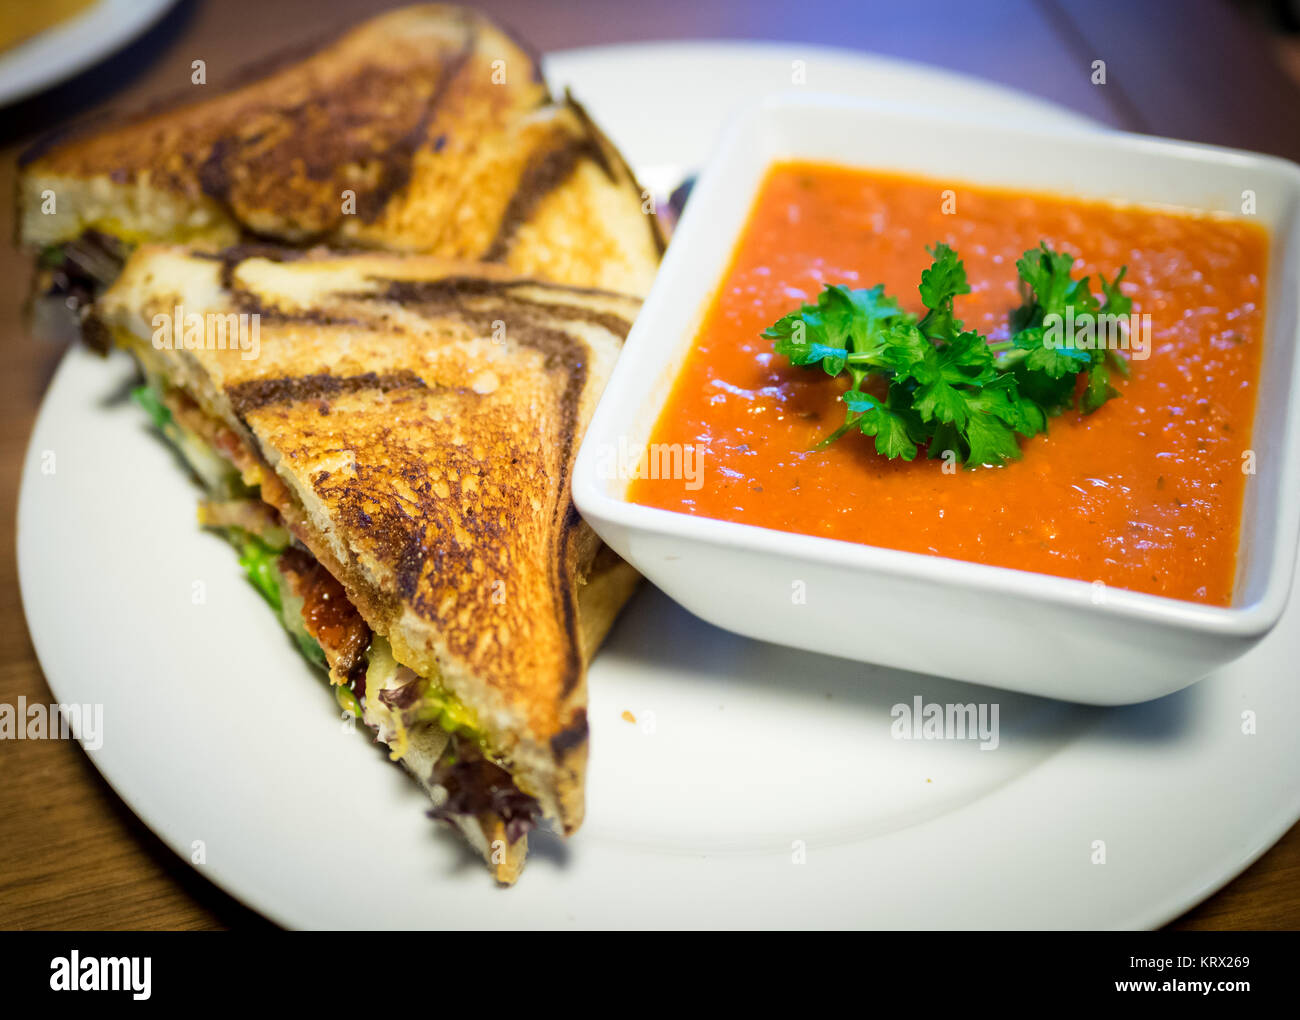 A BLT sandwich (bacon, lettuce, tomato sandwich) on marble rye bread and tomato soup from Culina Cafe in Edmonton, - Stock Image